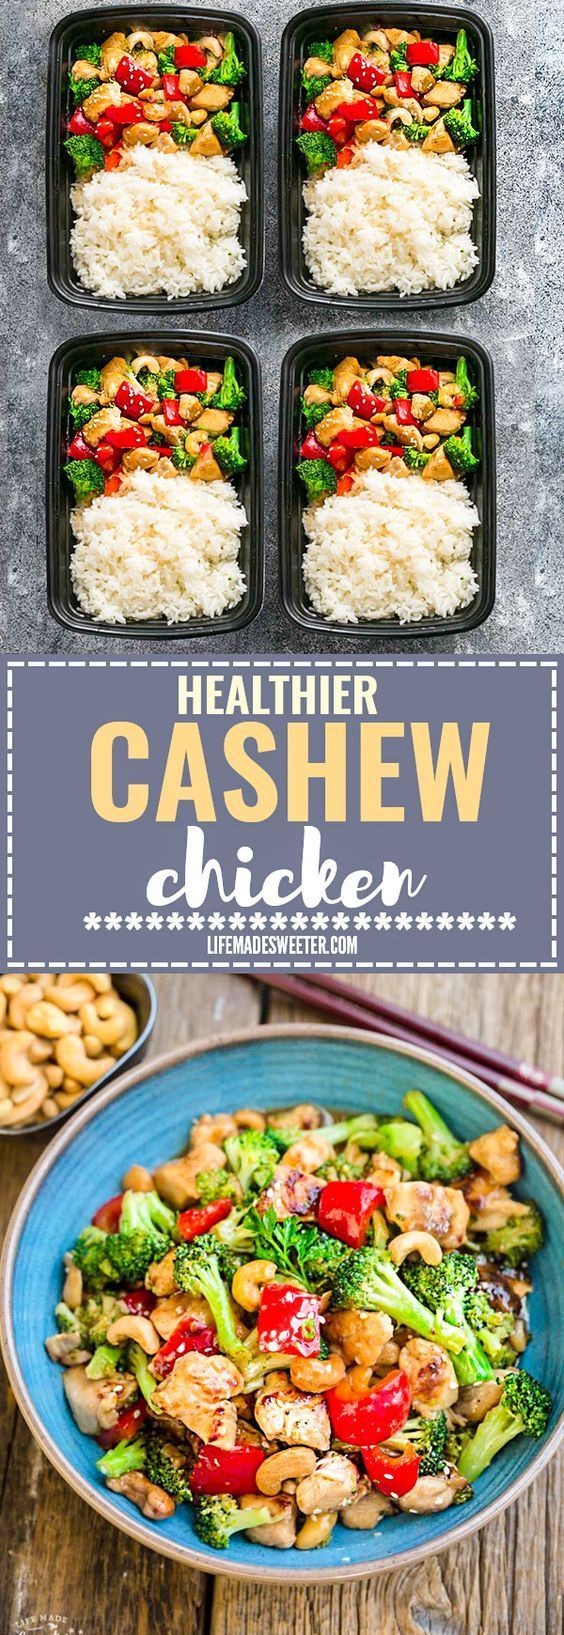 Healthier Slow Cooker Kung Pao Chicken makes the perfect easy and lightened up weeknight meal. Best of all, this takeout favorite, is SO much healthier and better than your local Chinese restaurant with just a few minutes of prep time. With gluten free and paleo friendly options. Weekly meal prep or leftovers are great for lunch bowls for work or school.